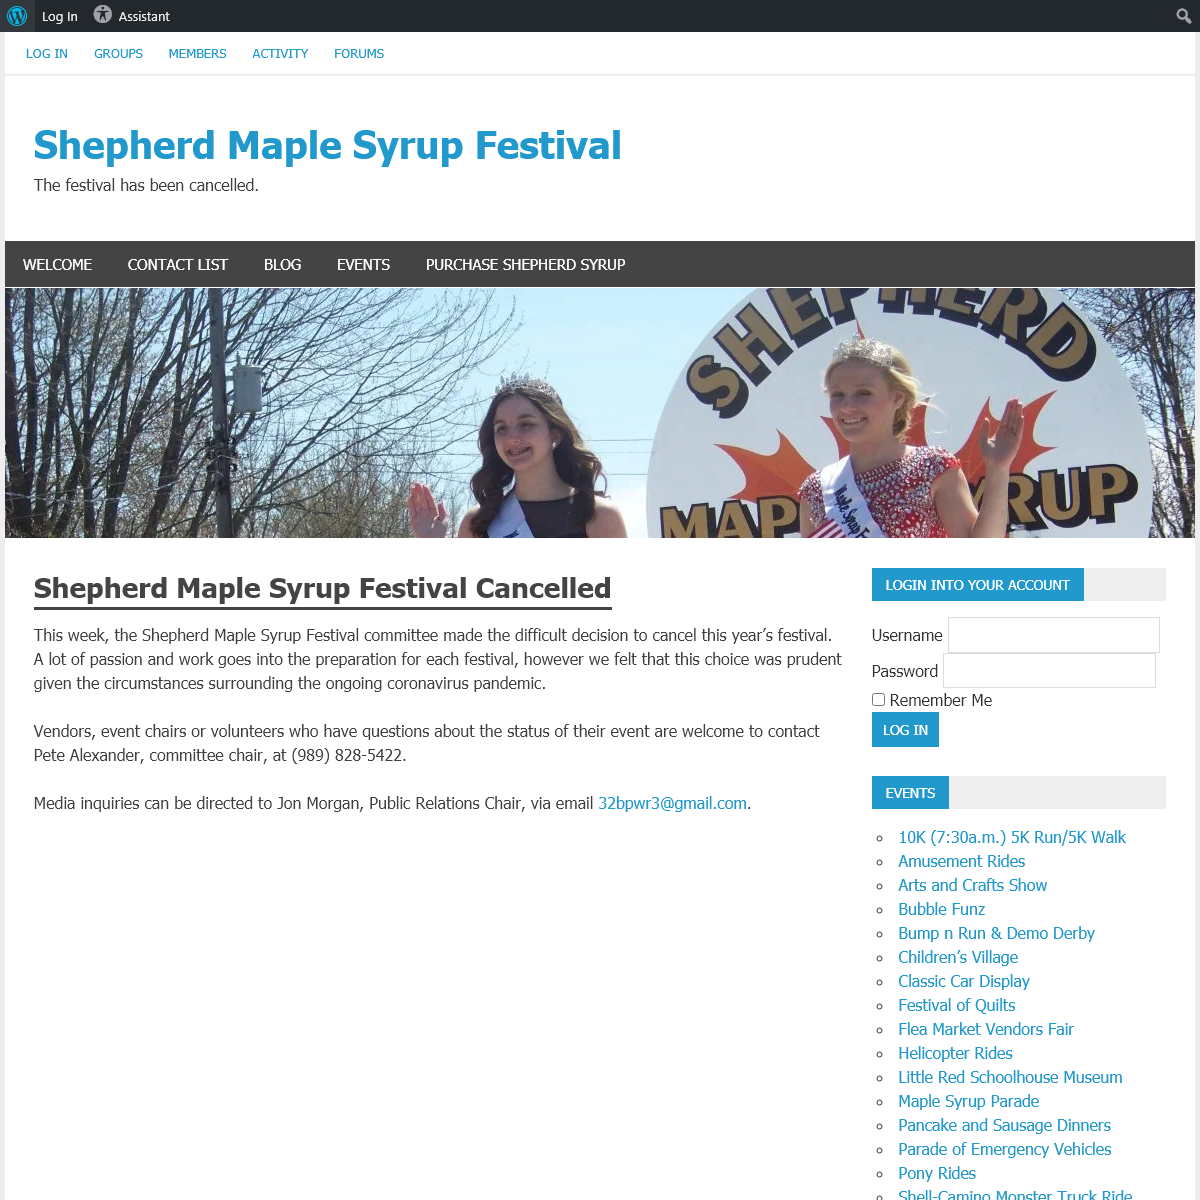 Shepherd Maple Syrup Festival – The festival has been cancelled.